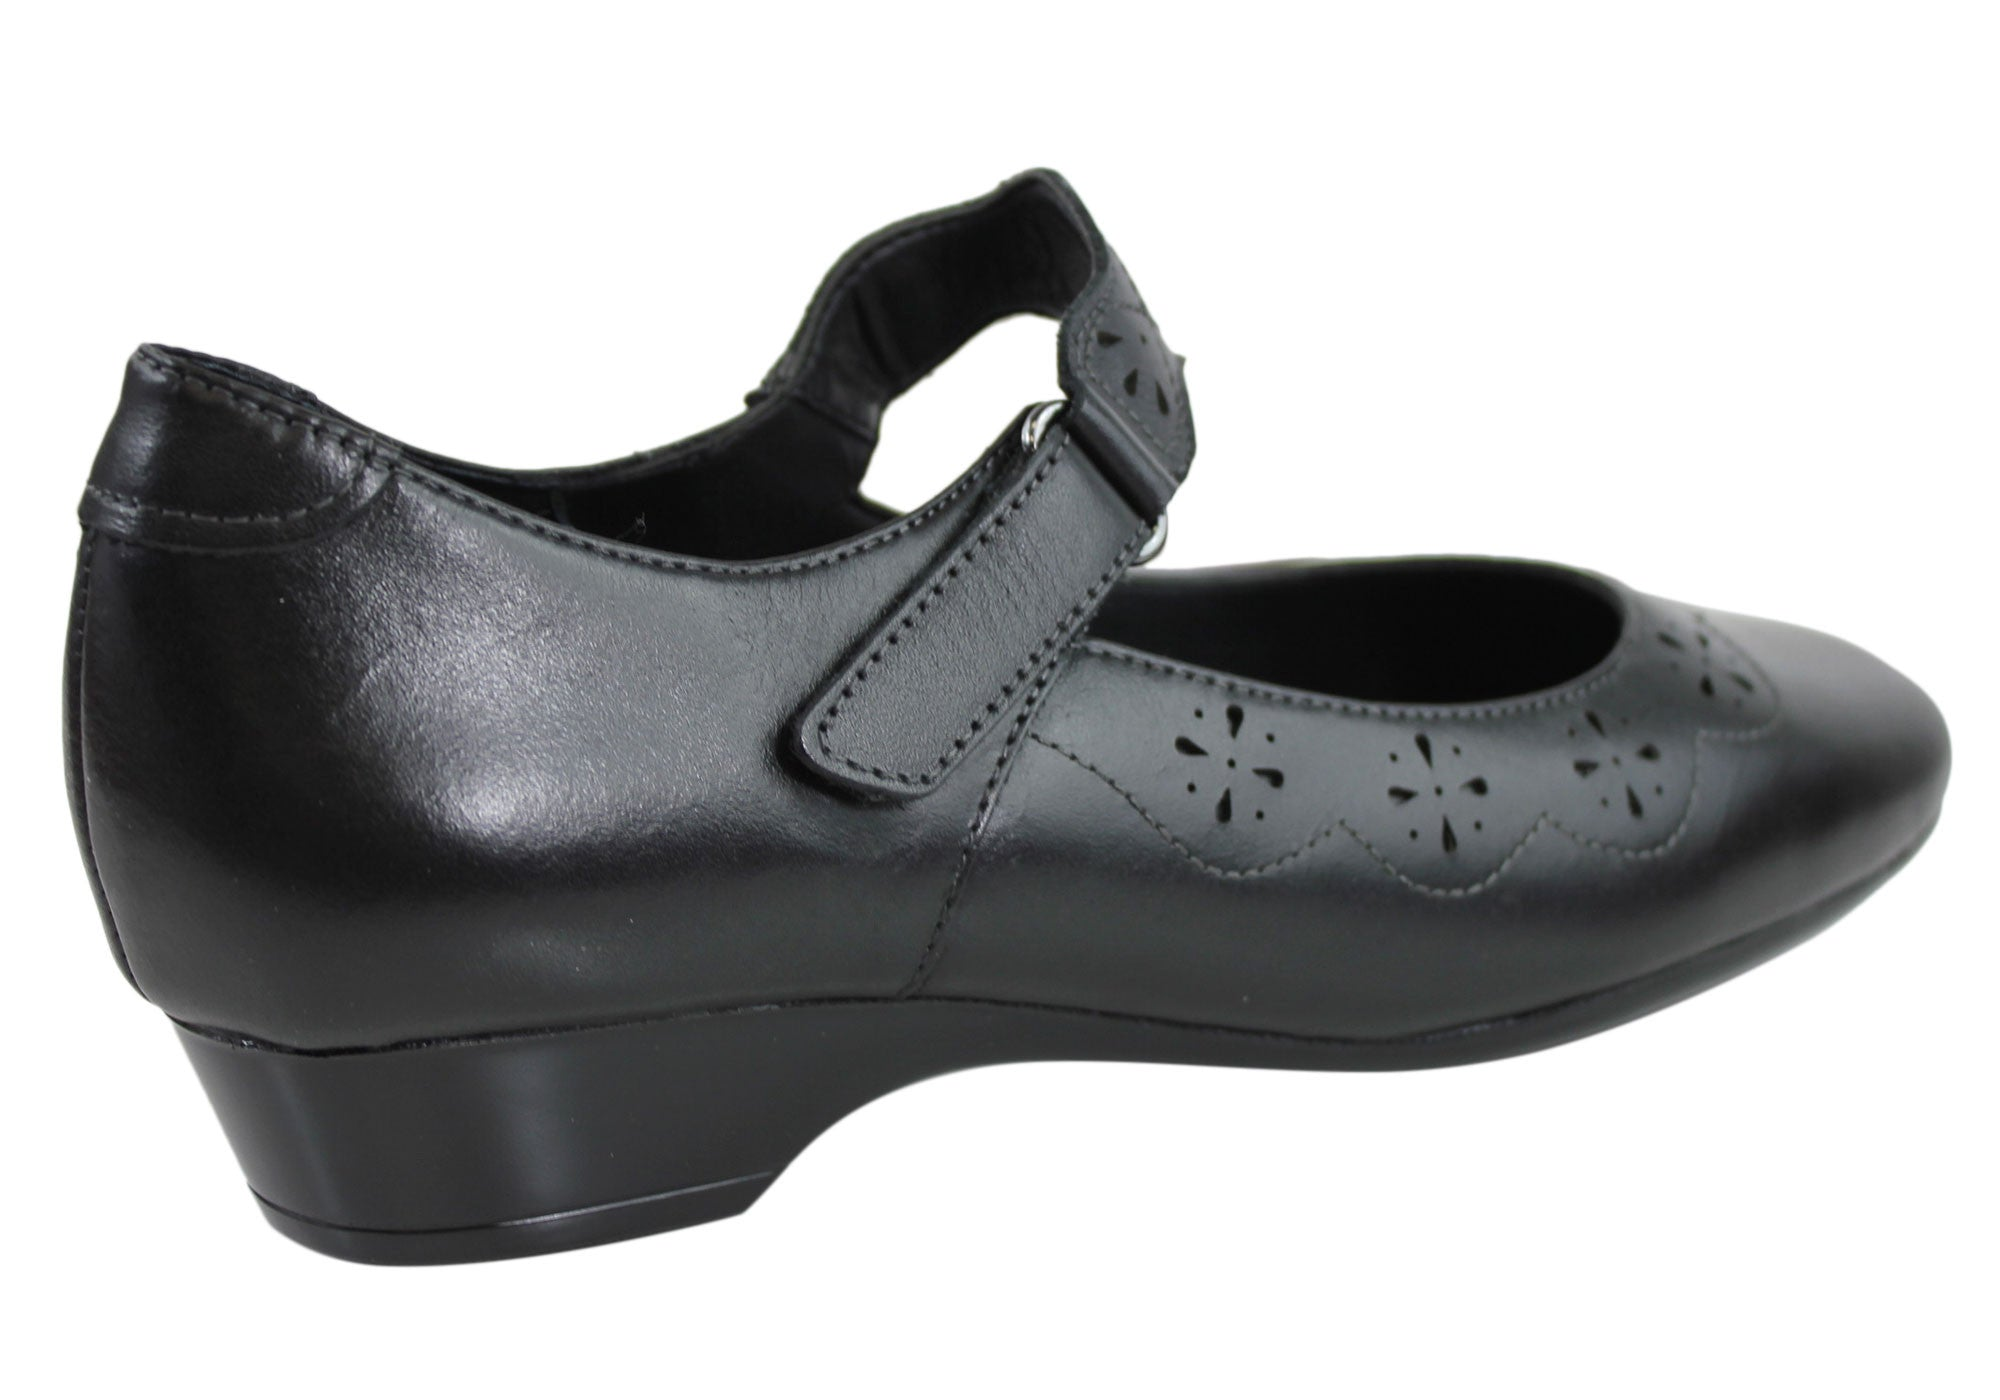 Hush Puppies Kassidy Womens Leather Mary Jane shoes